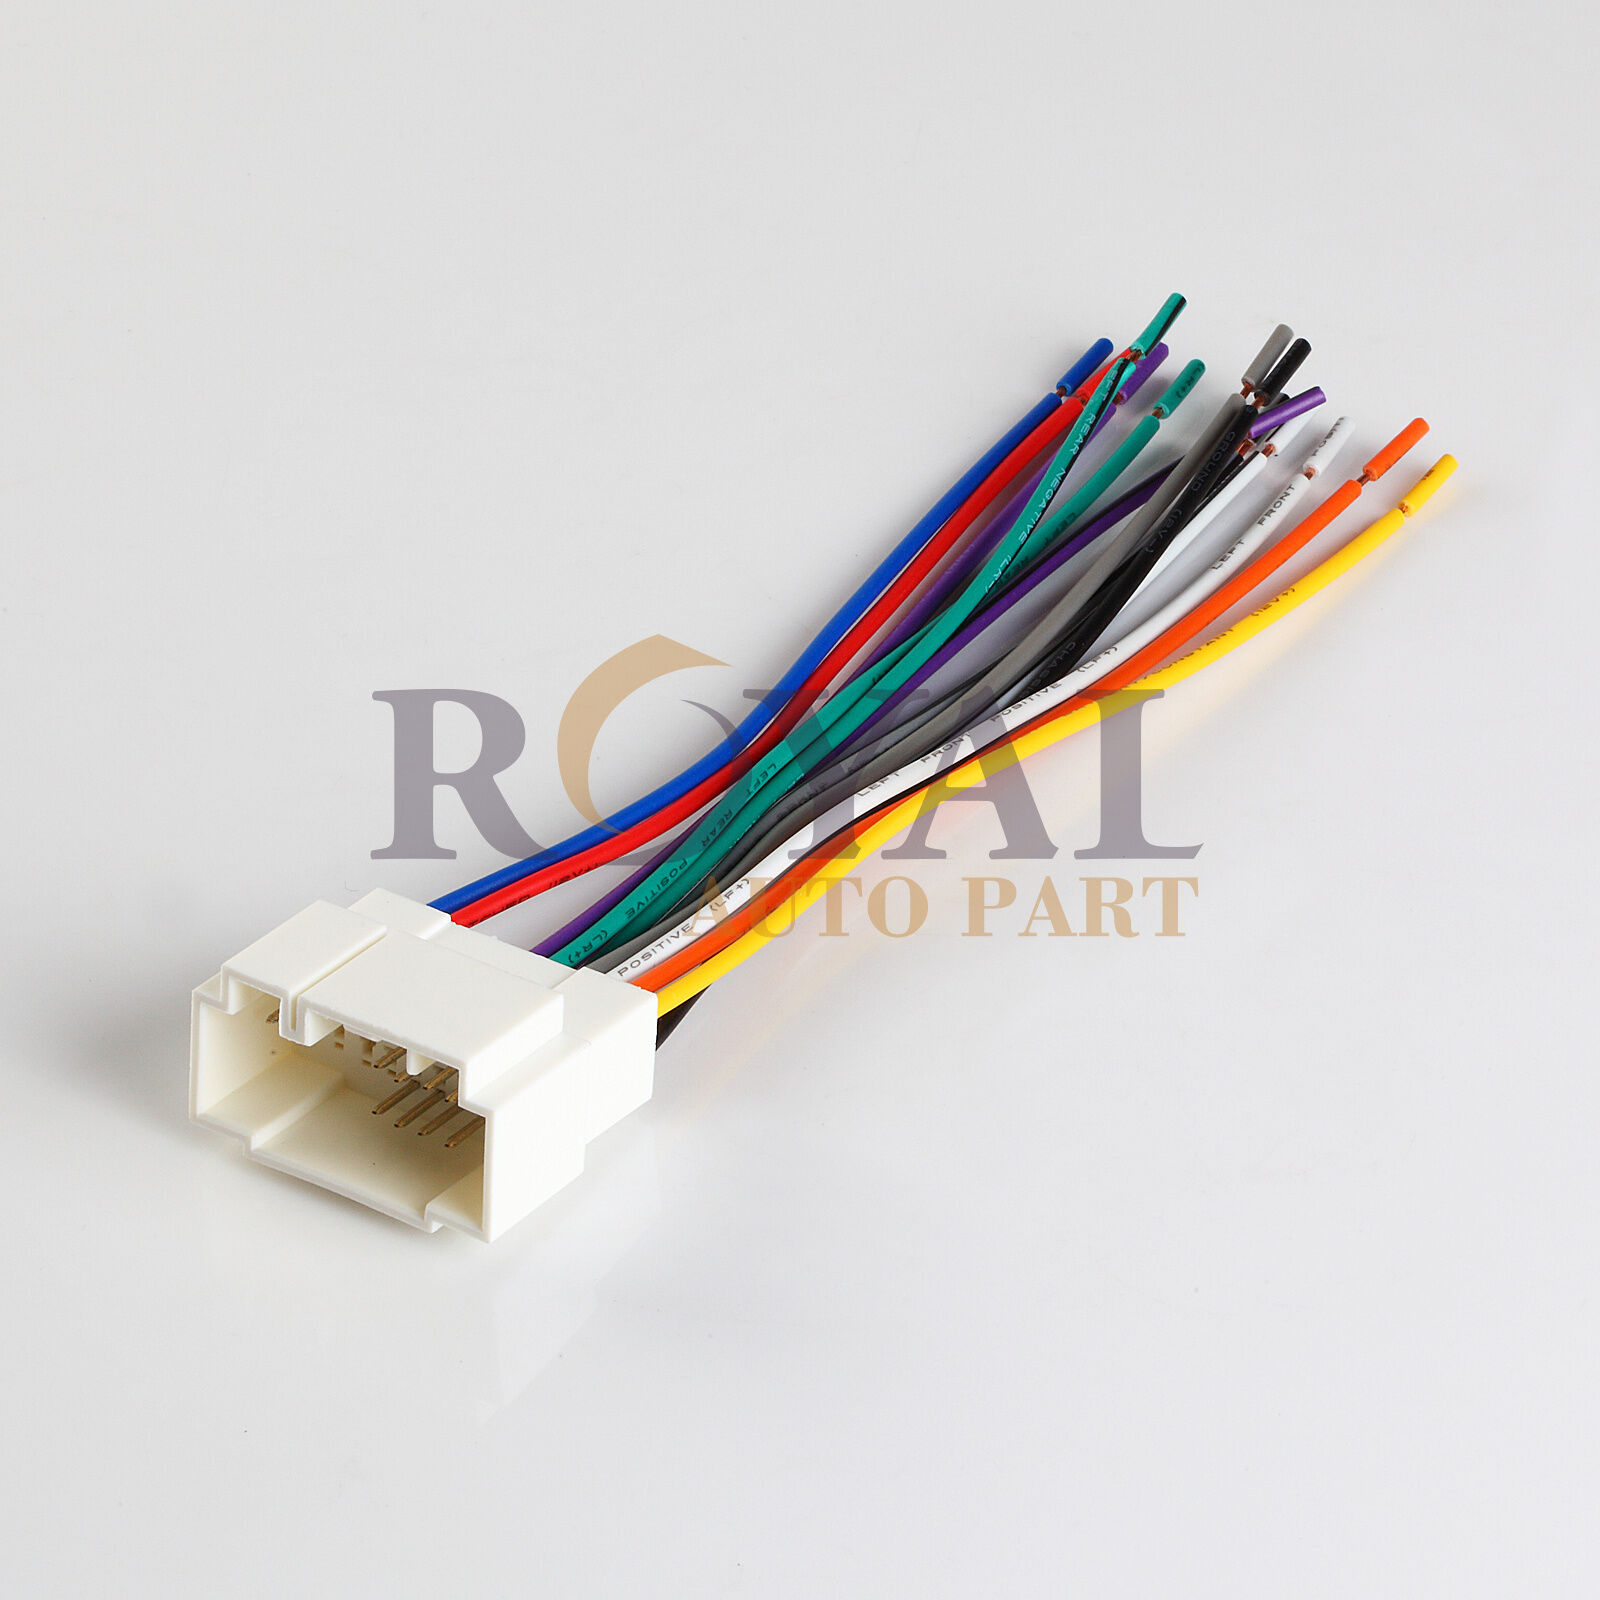 s l1600 metra 70 1721 car stereo wiring harness for acura honda vehicles metra 70-1721 radio wiring harness at nearapp.co